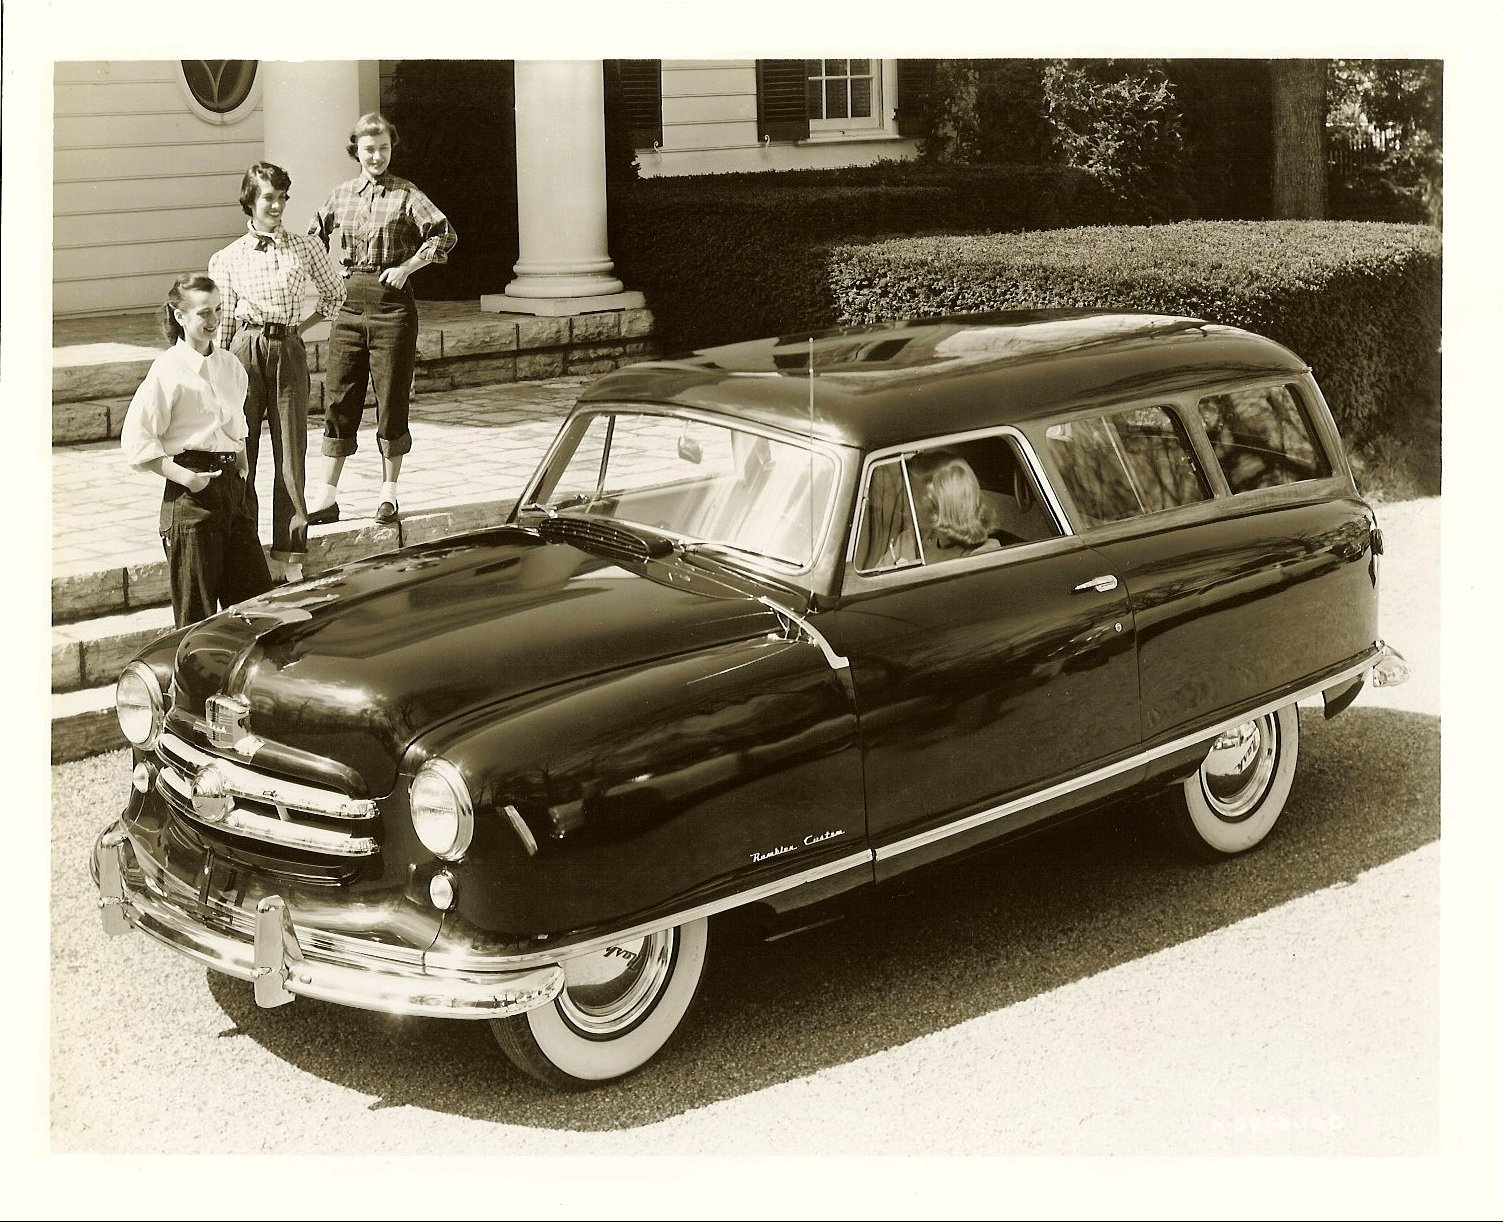 1951 NASH Rambler Custom Station Wagon Note: 1951 Flying Lady Hood Ornament 10″x8″ Black & White photograph H-5956-10C